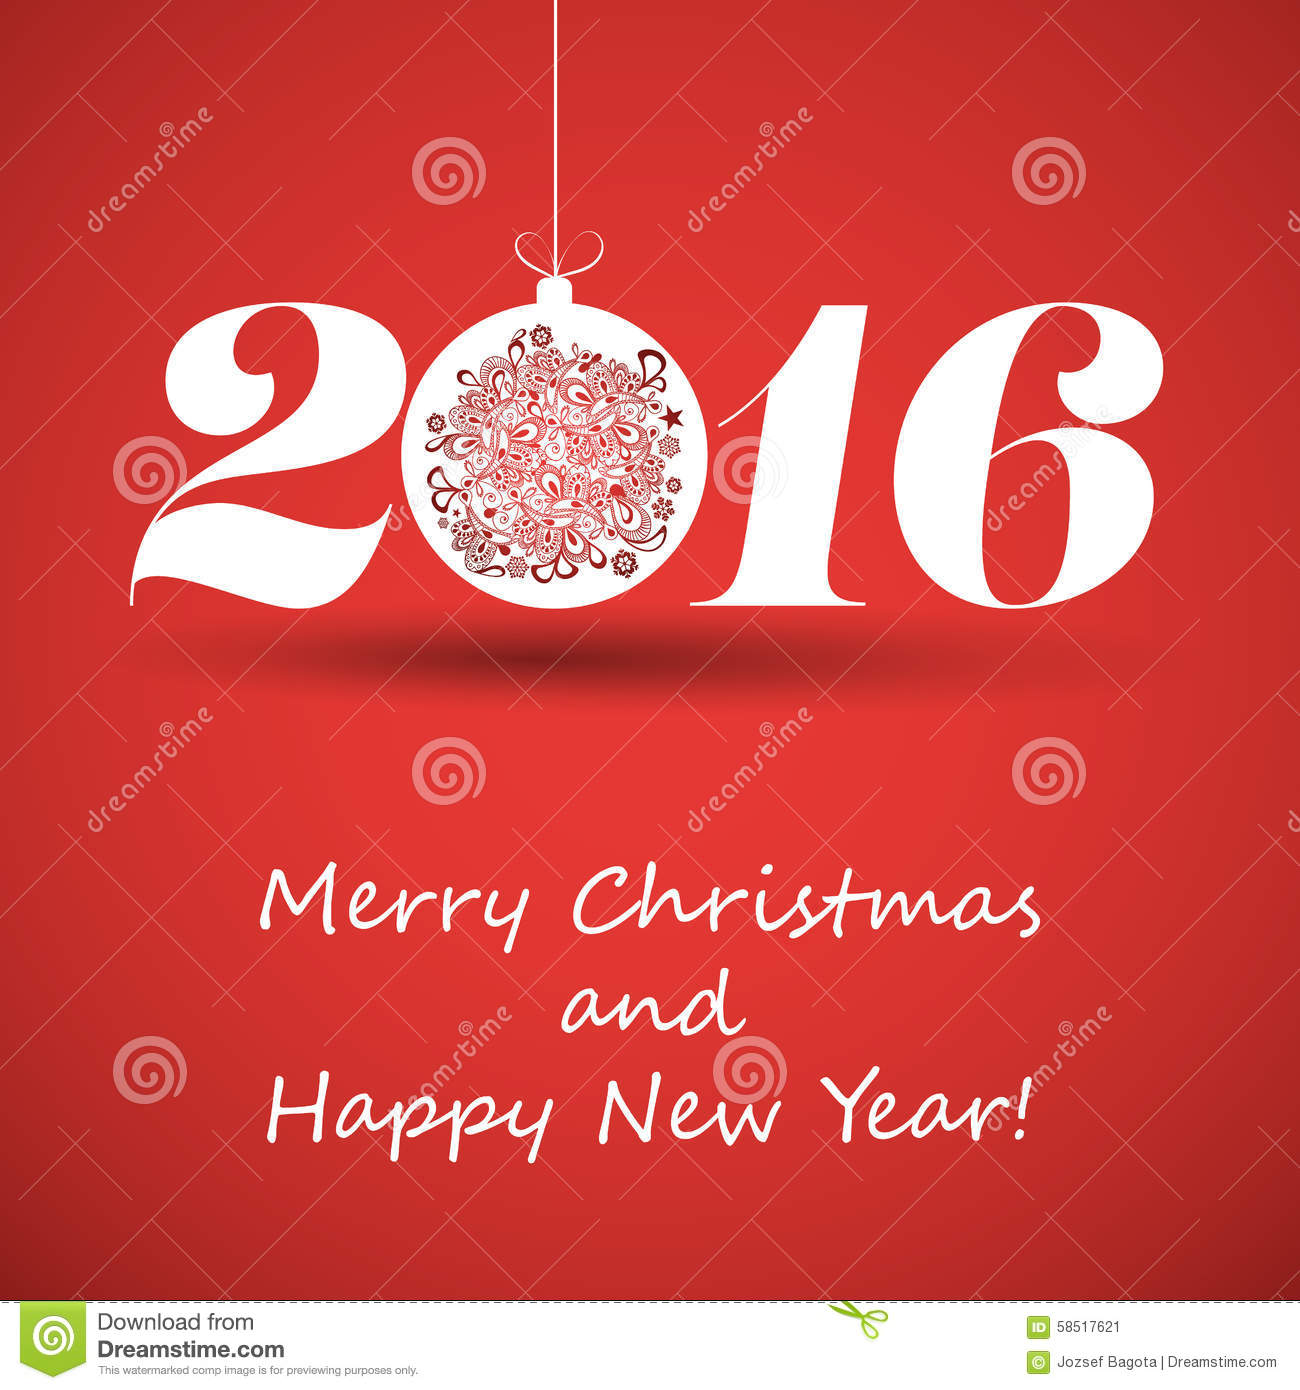 merry christmas and happy new year greeting card creative design template 2016